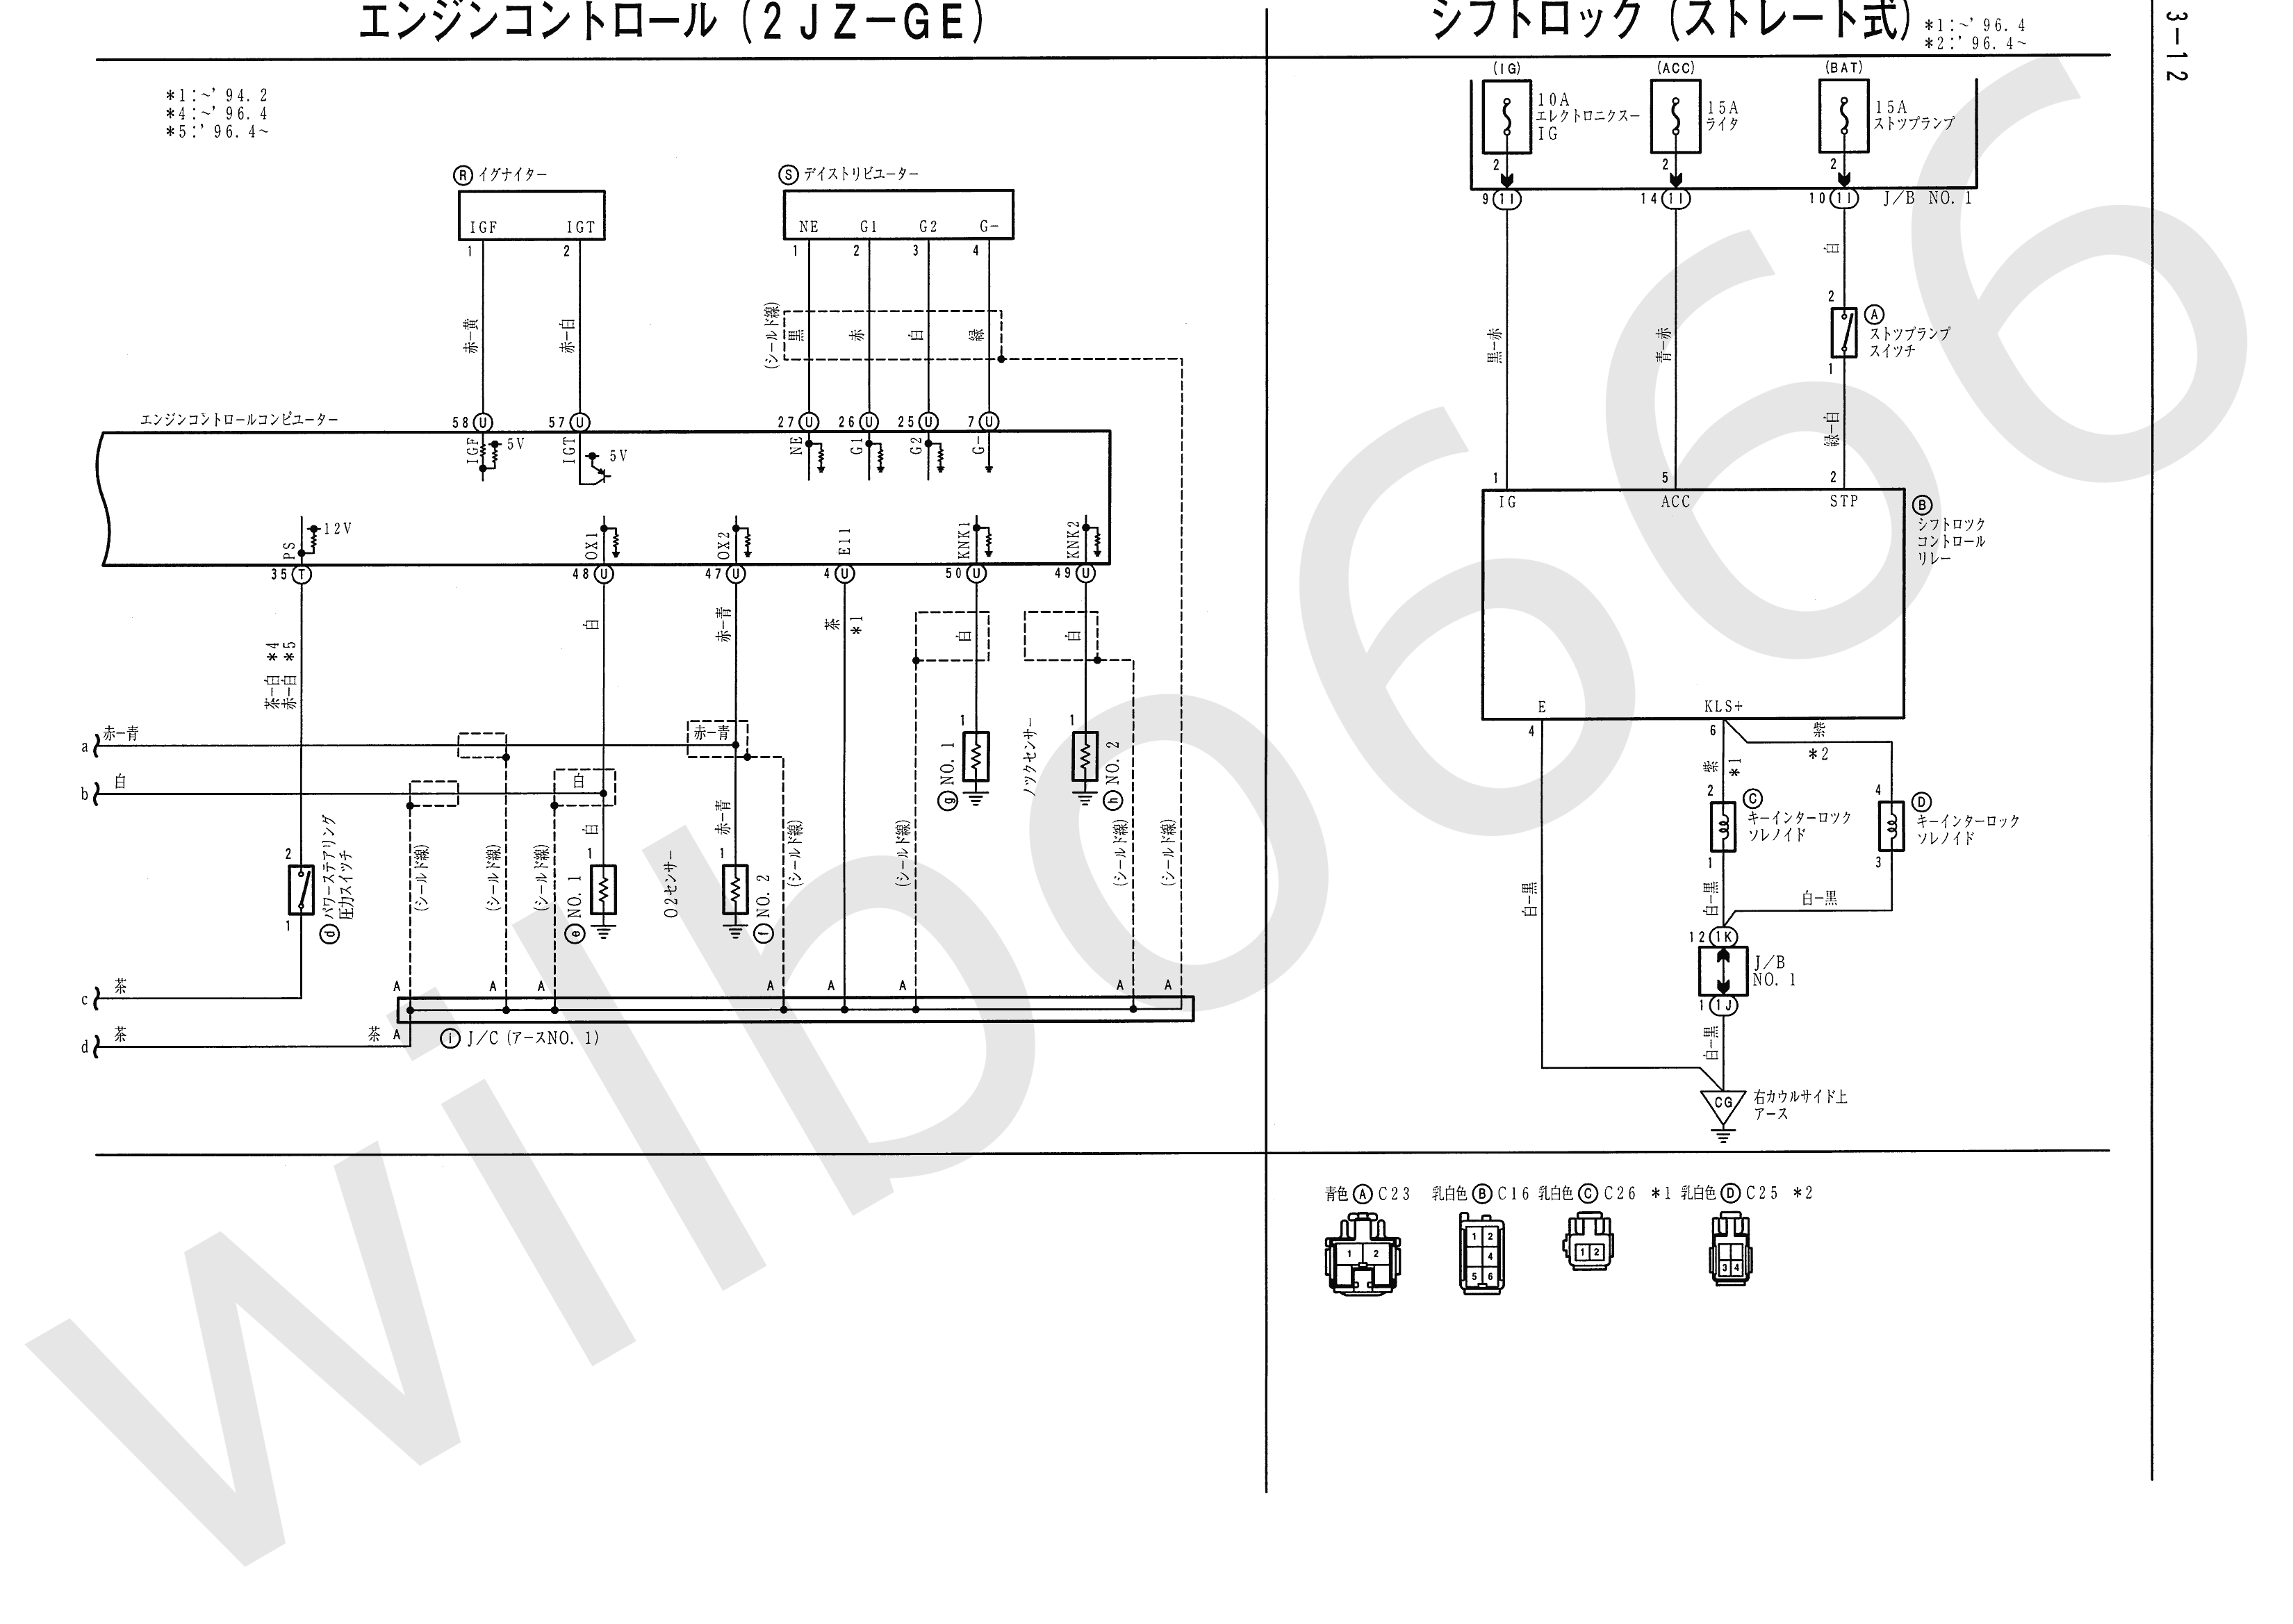 Wilbo666 2jz Ge Jza80 Supra Engine Wiring Tps On 60 Series Schematics Electrical Diagram Book 6742505